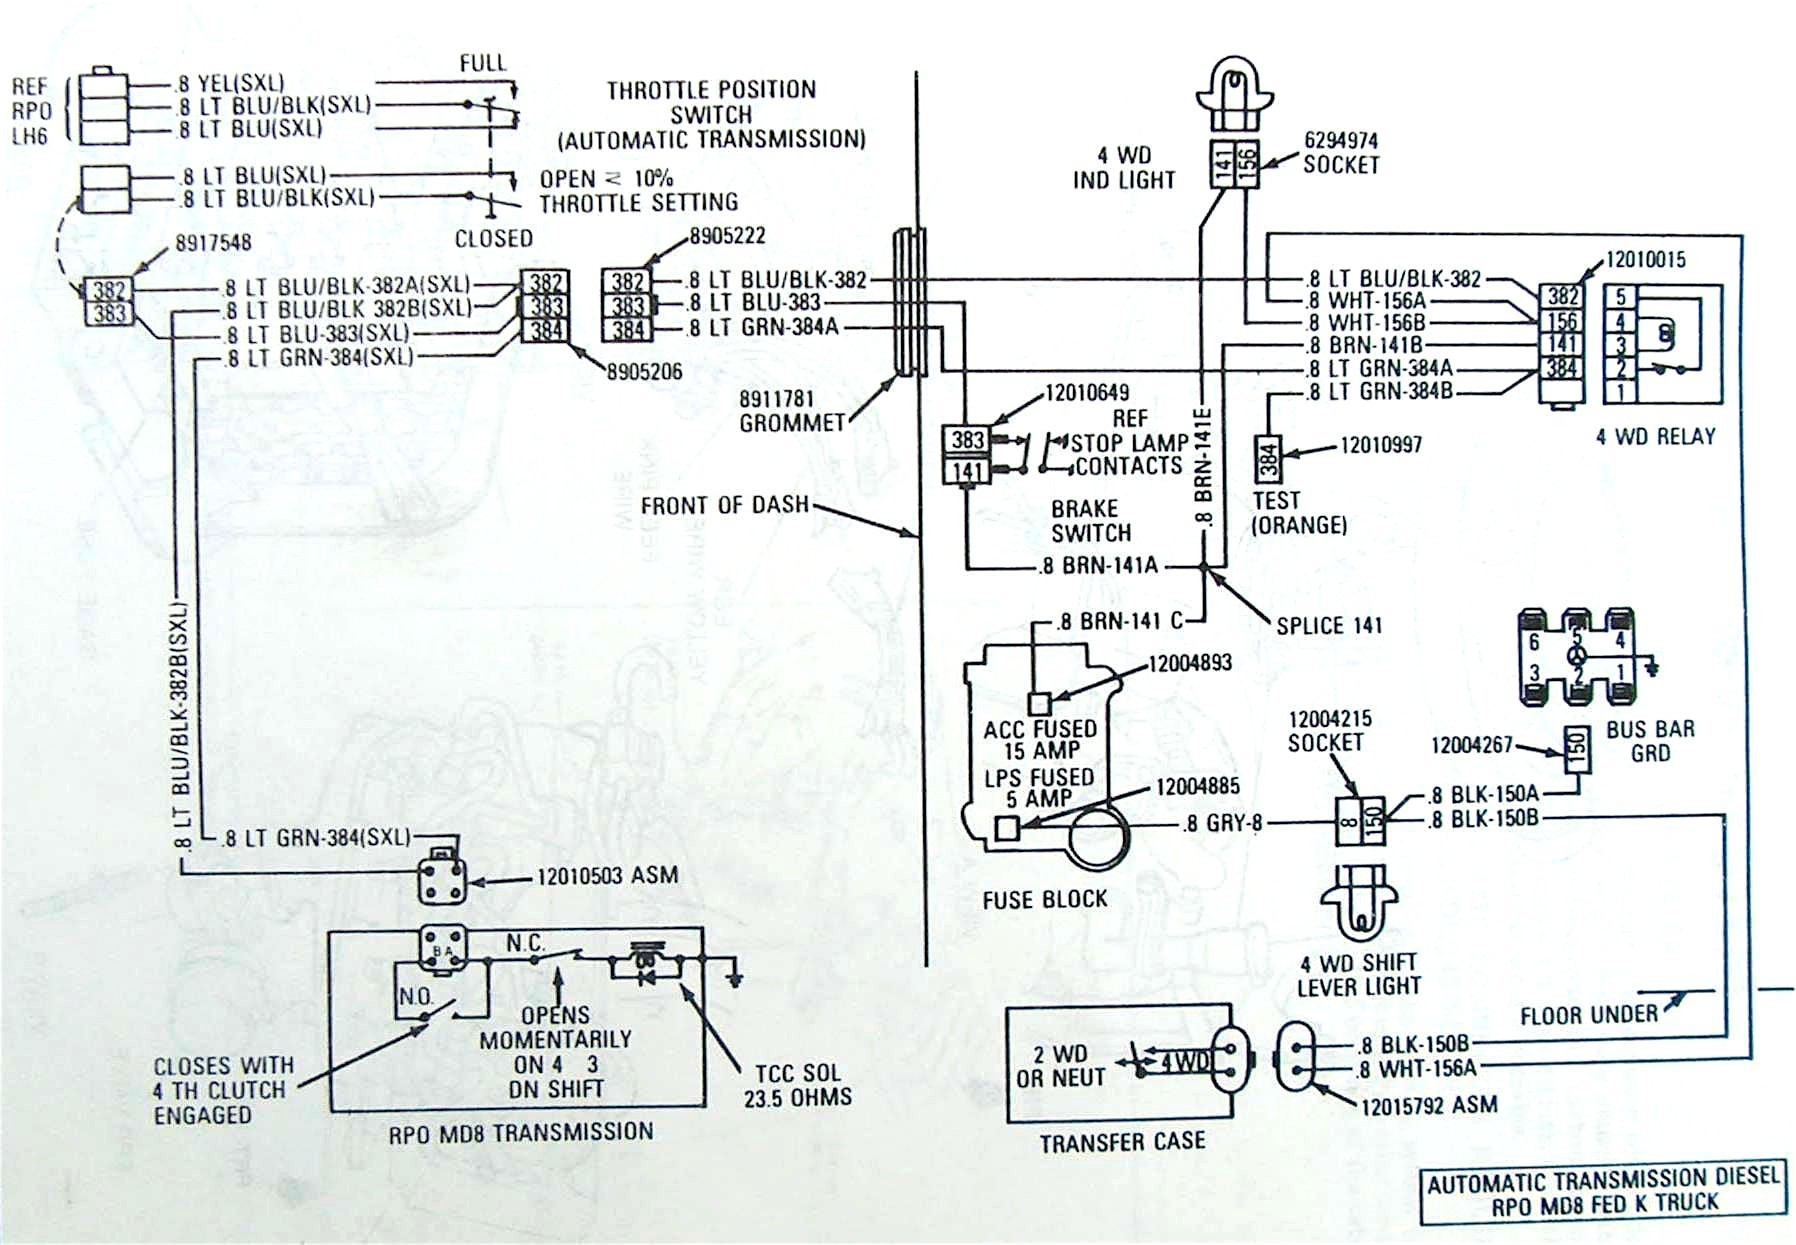 Torque Converter Diagram 4l60e 700r4 Wiring Wiring Center • Of Torque Converter Diagram